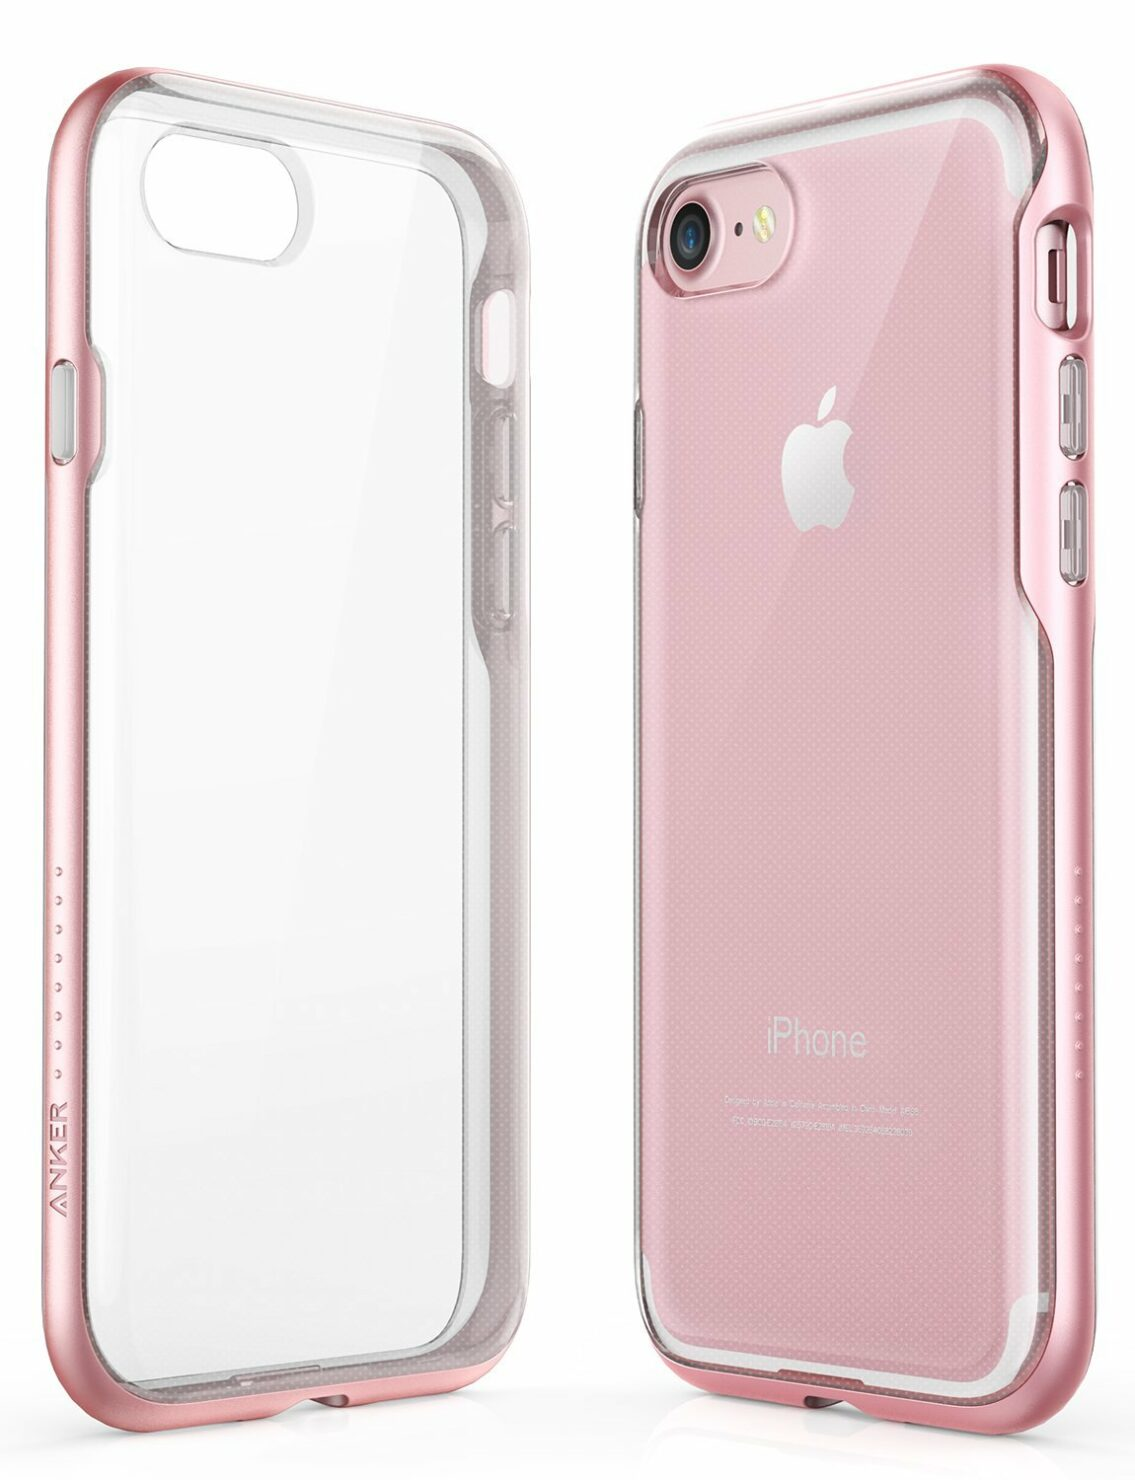 anker-ice-case-lite-clear-protective-slim-case-cover-soft-tpu-back